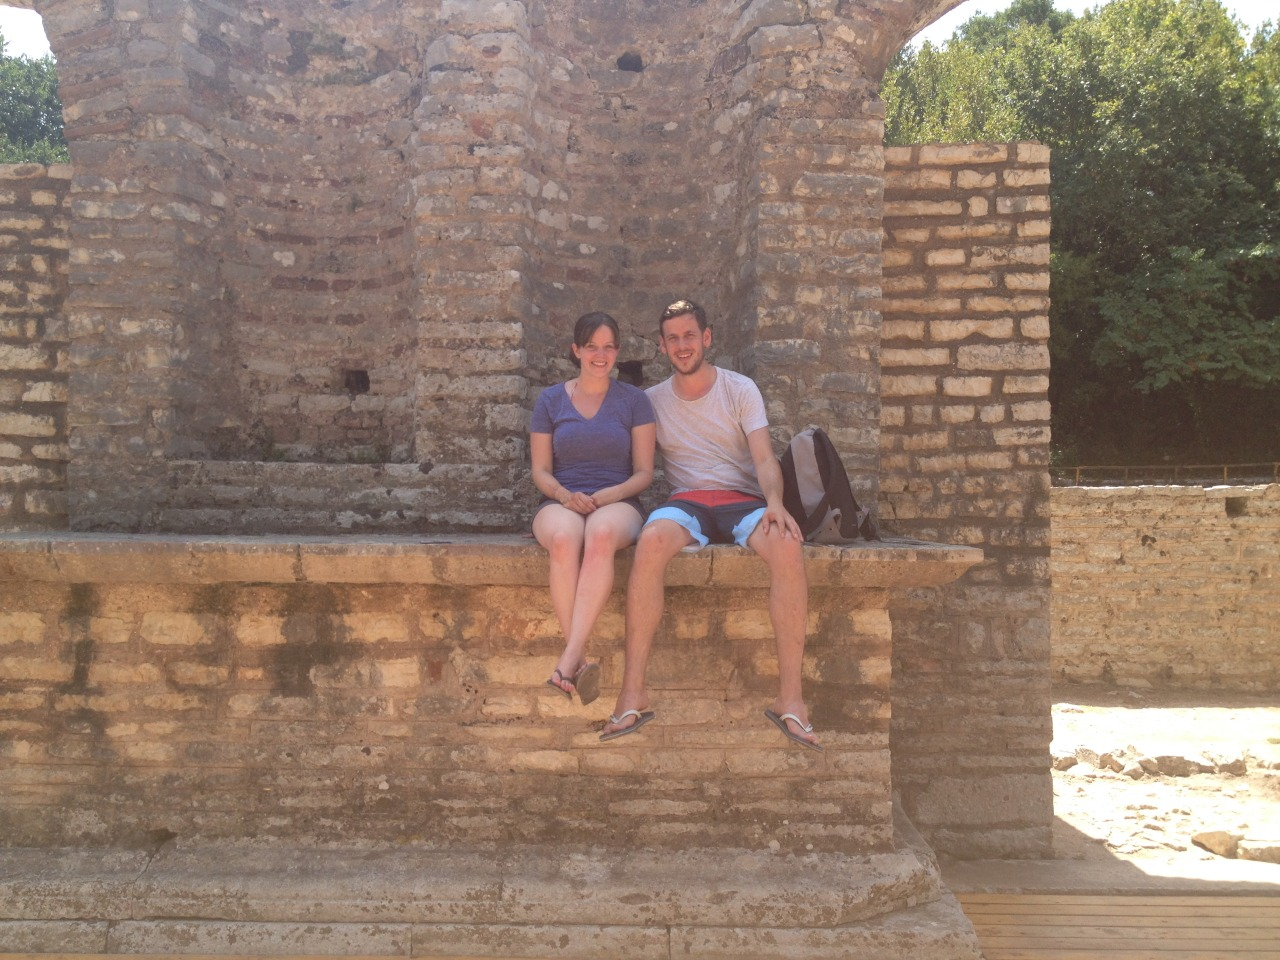 At the Butrint ruins in Albania